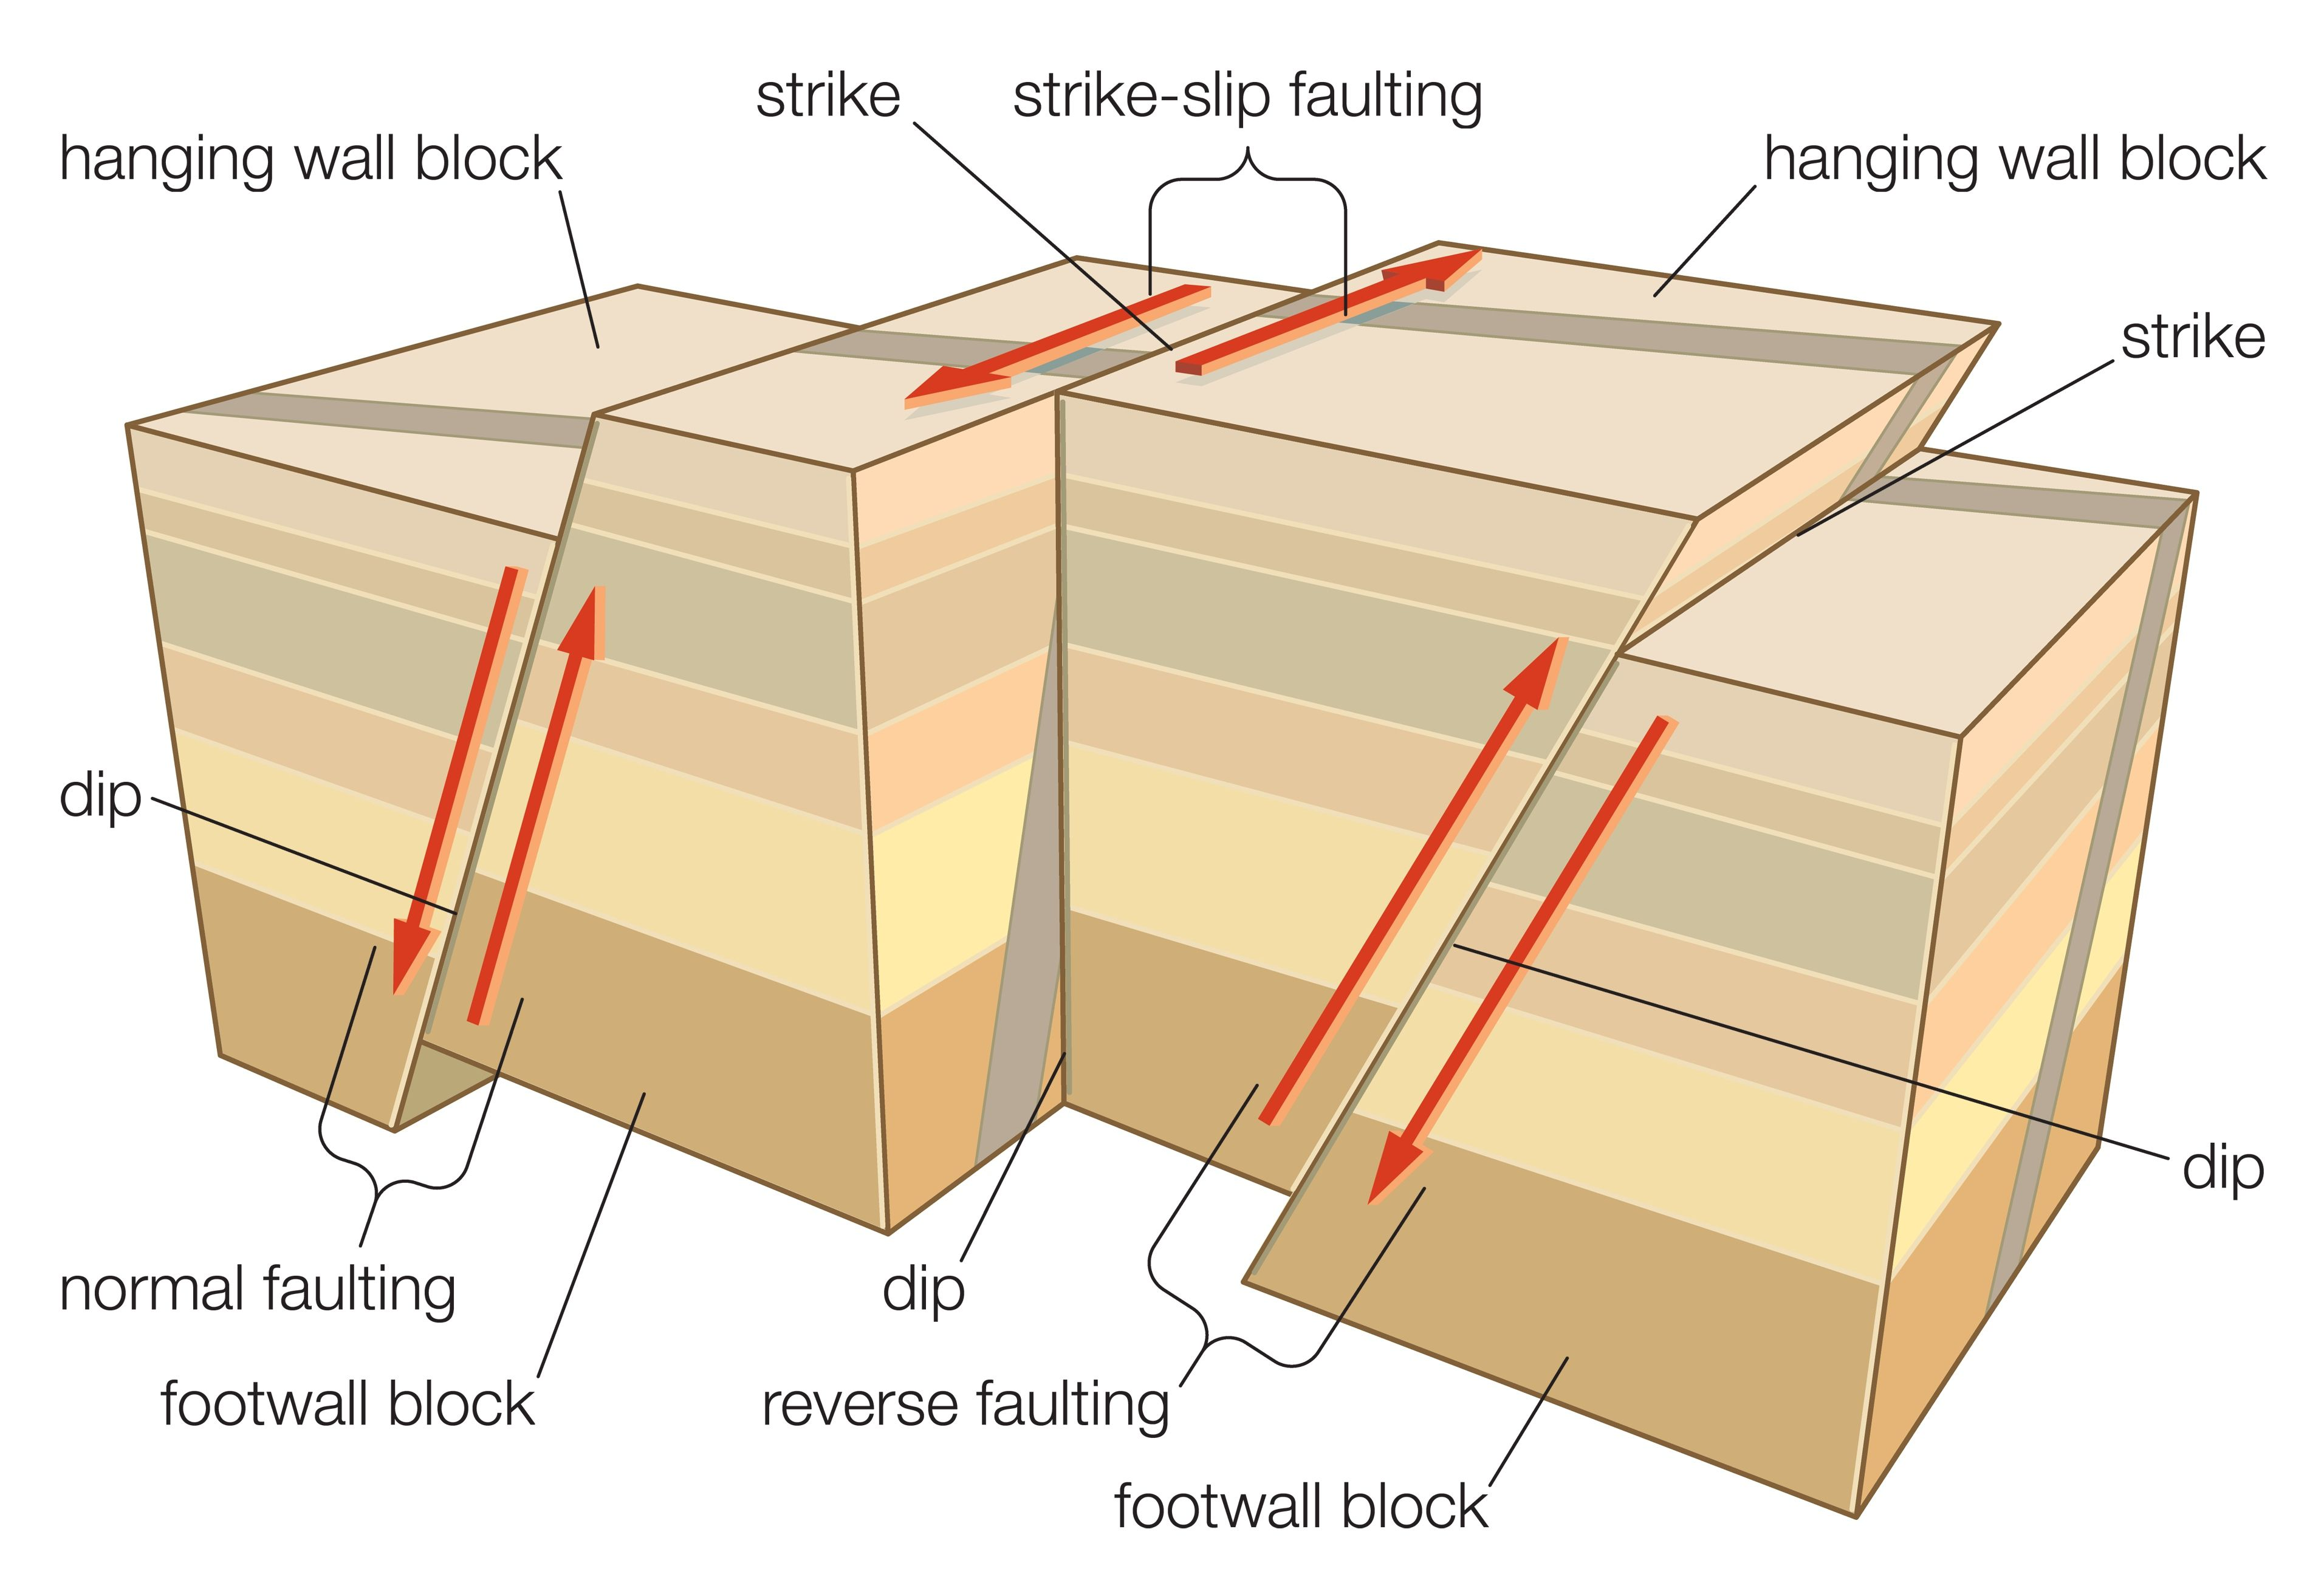 strike slip fault block diagram fan motor wiring single phase learn about different types of faulting